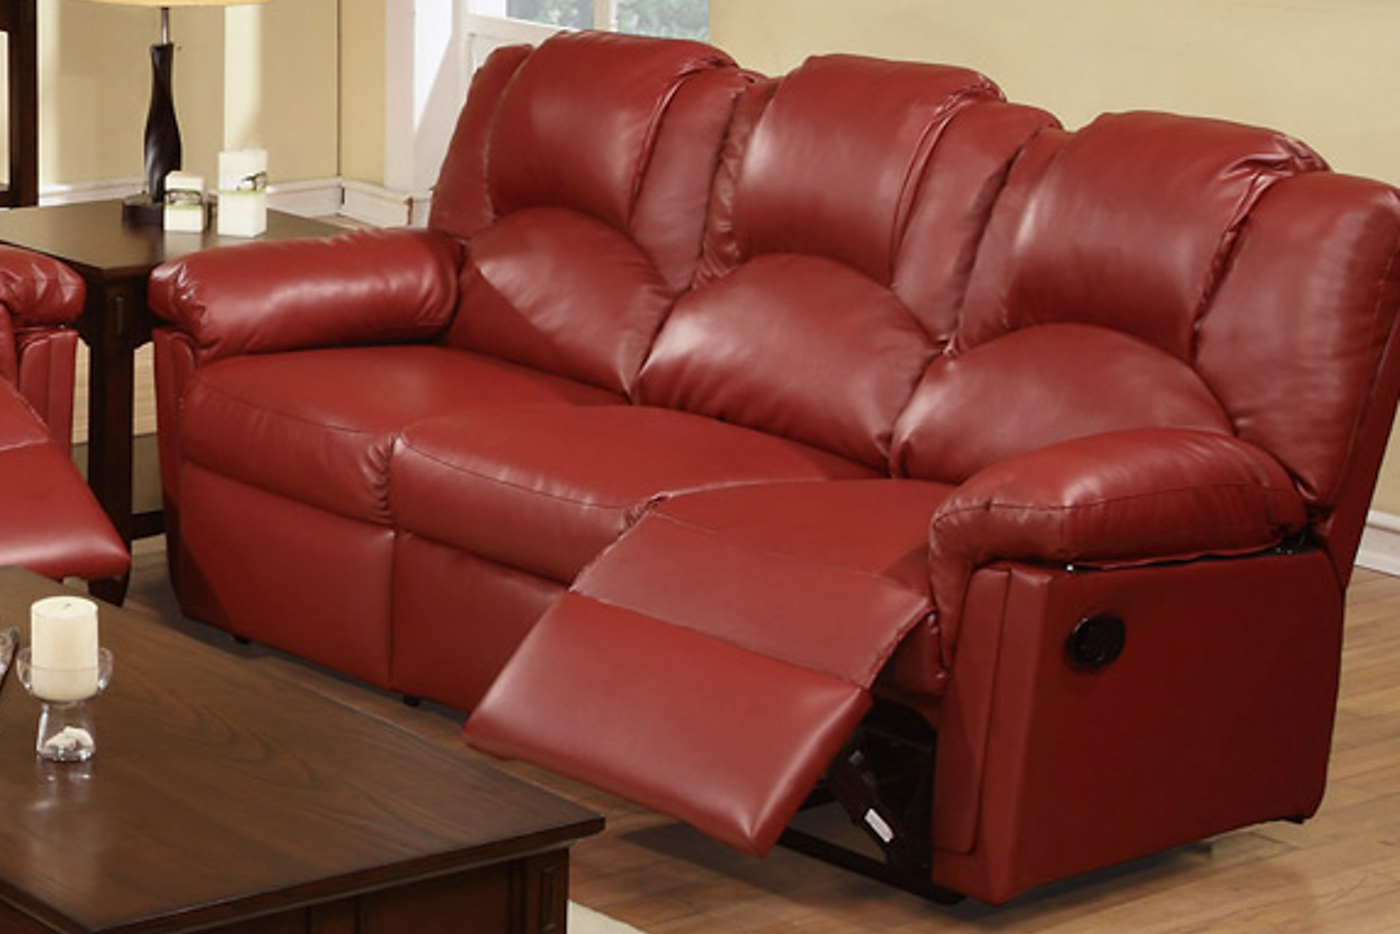 threshold sofa leather recliner width alexander trim reclining products alexanderreclining item height corinthian